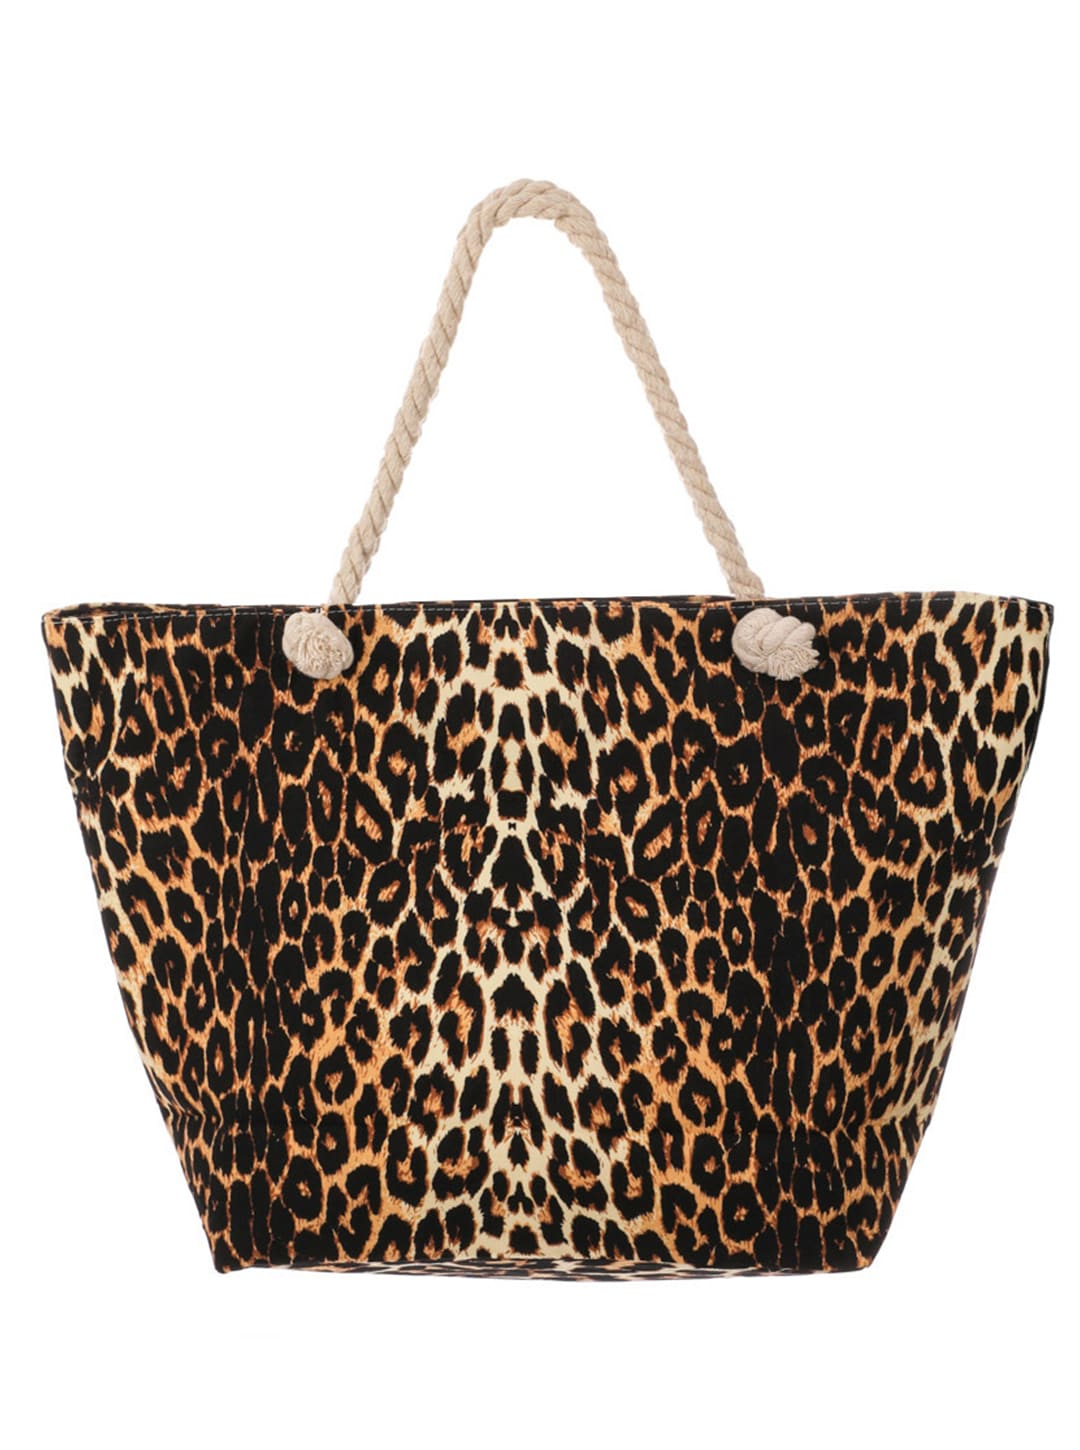 Leopard Print Canvas Summer Tote - Brown - Back